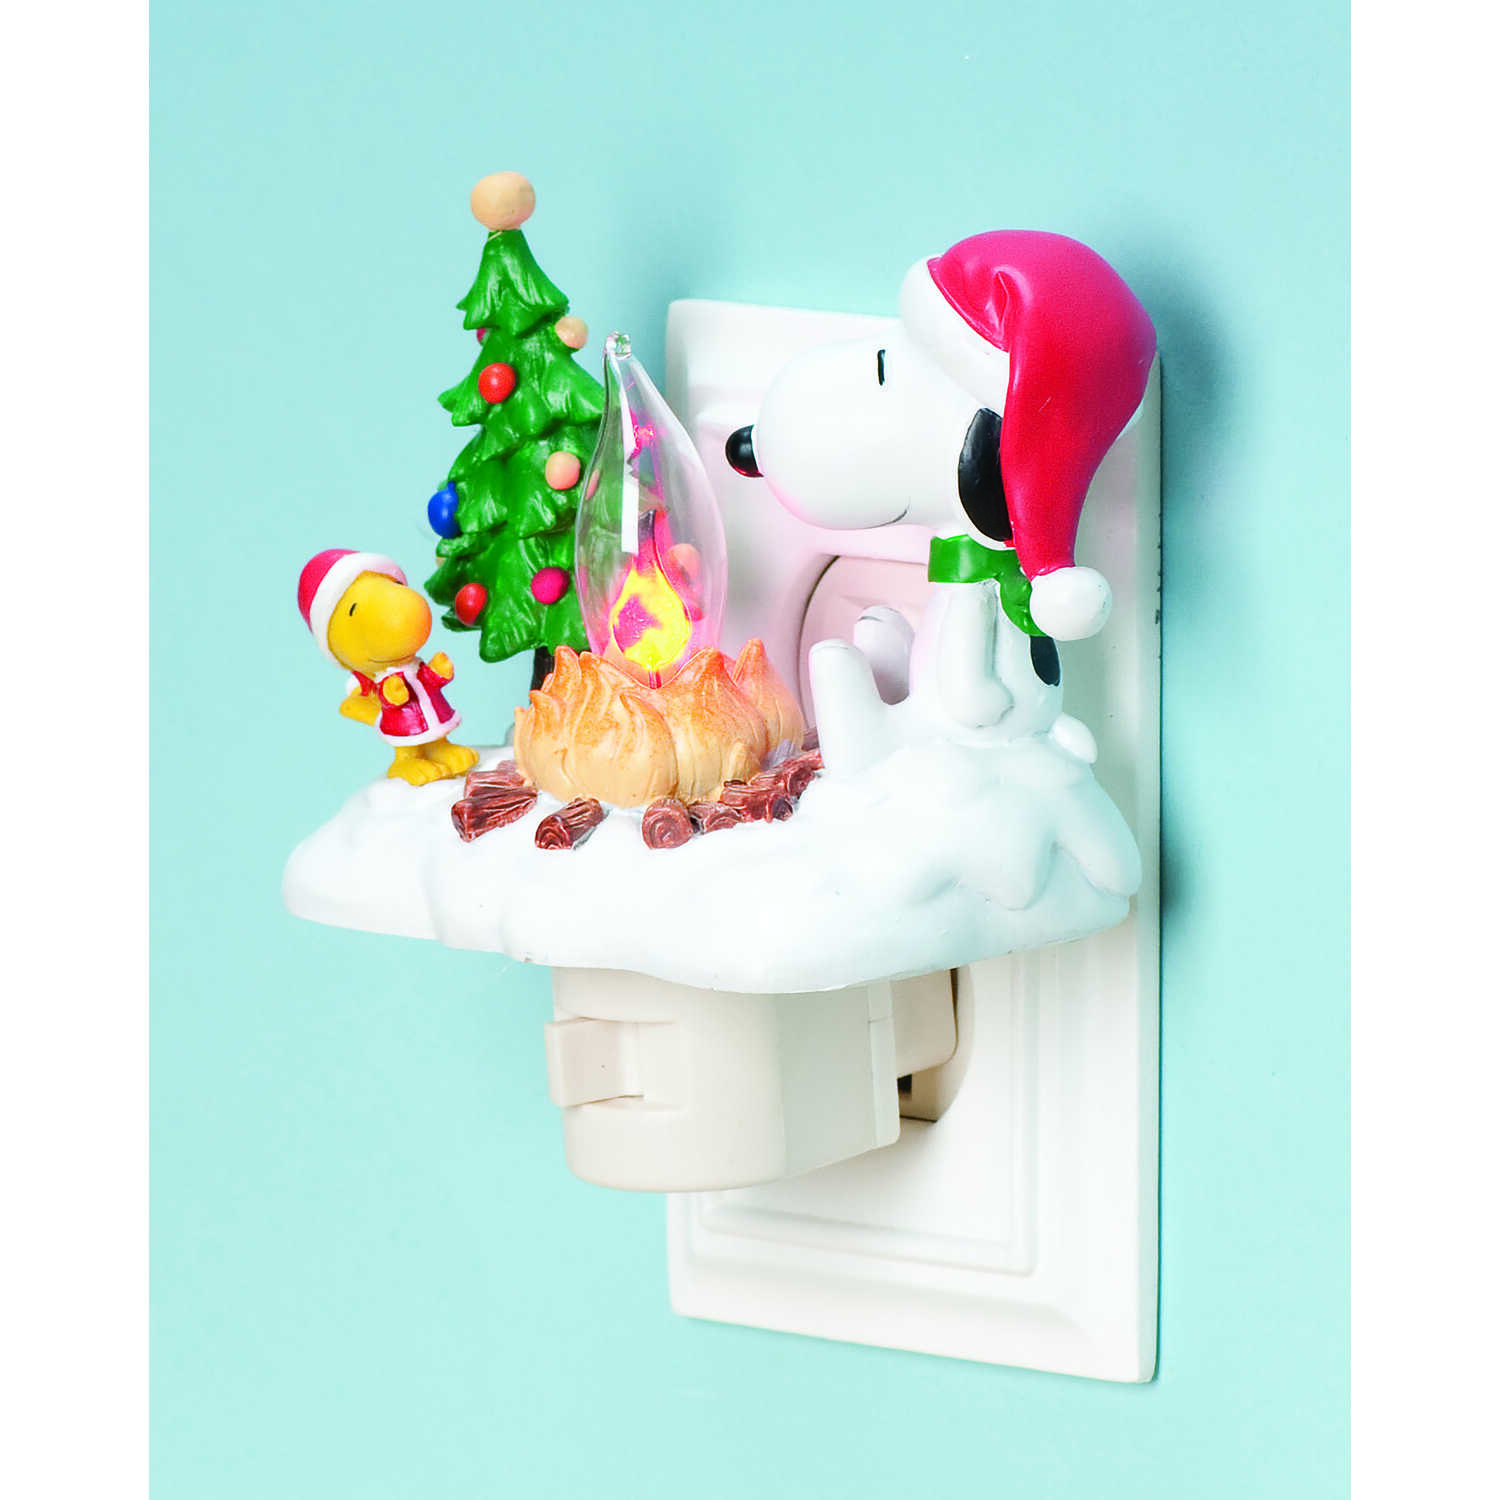 Roman  Snoopy and Woodstock  Multicolored  Resin  1 pc. Night Light